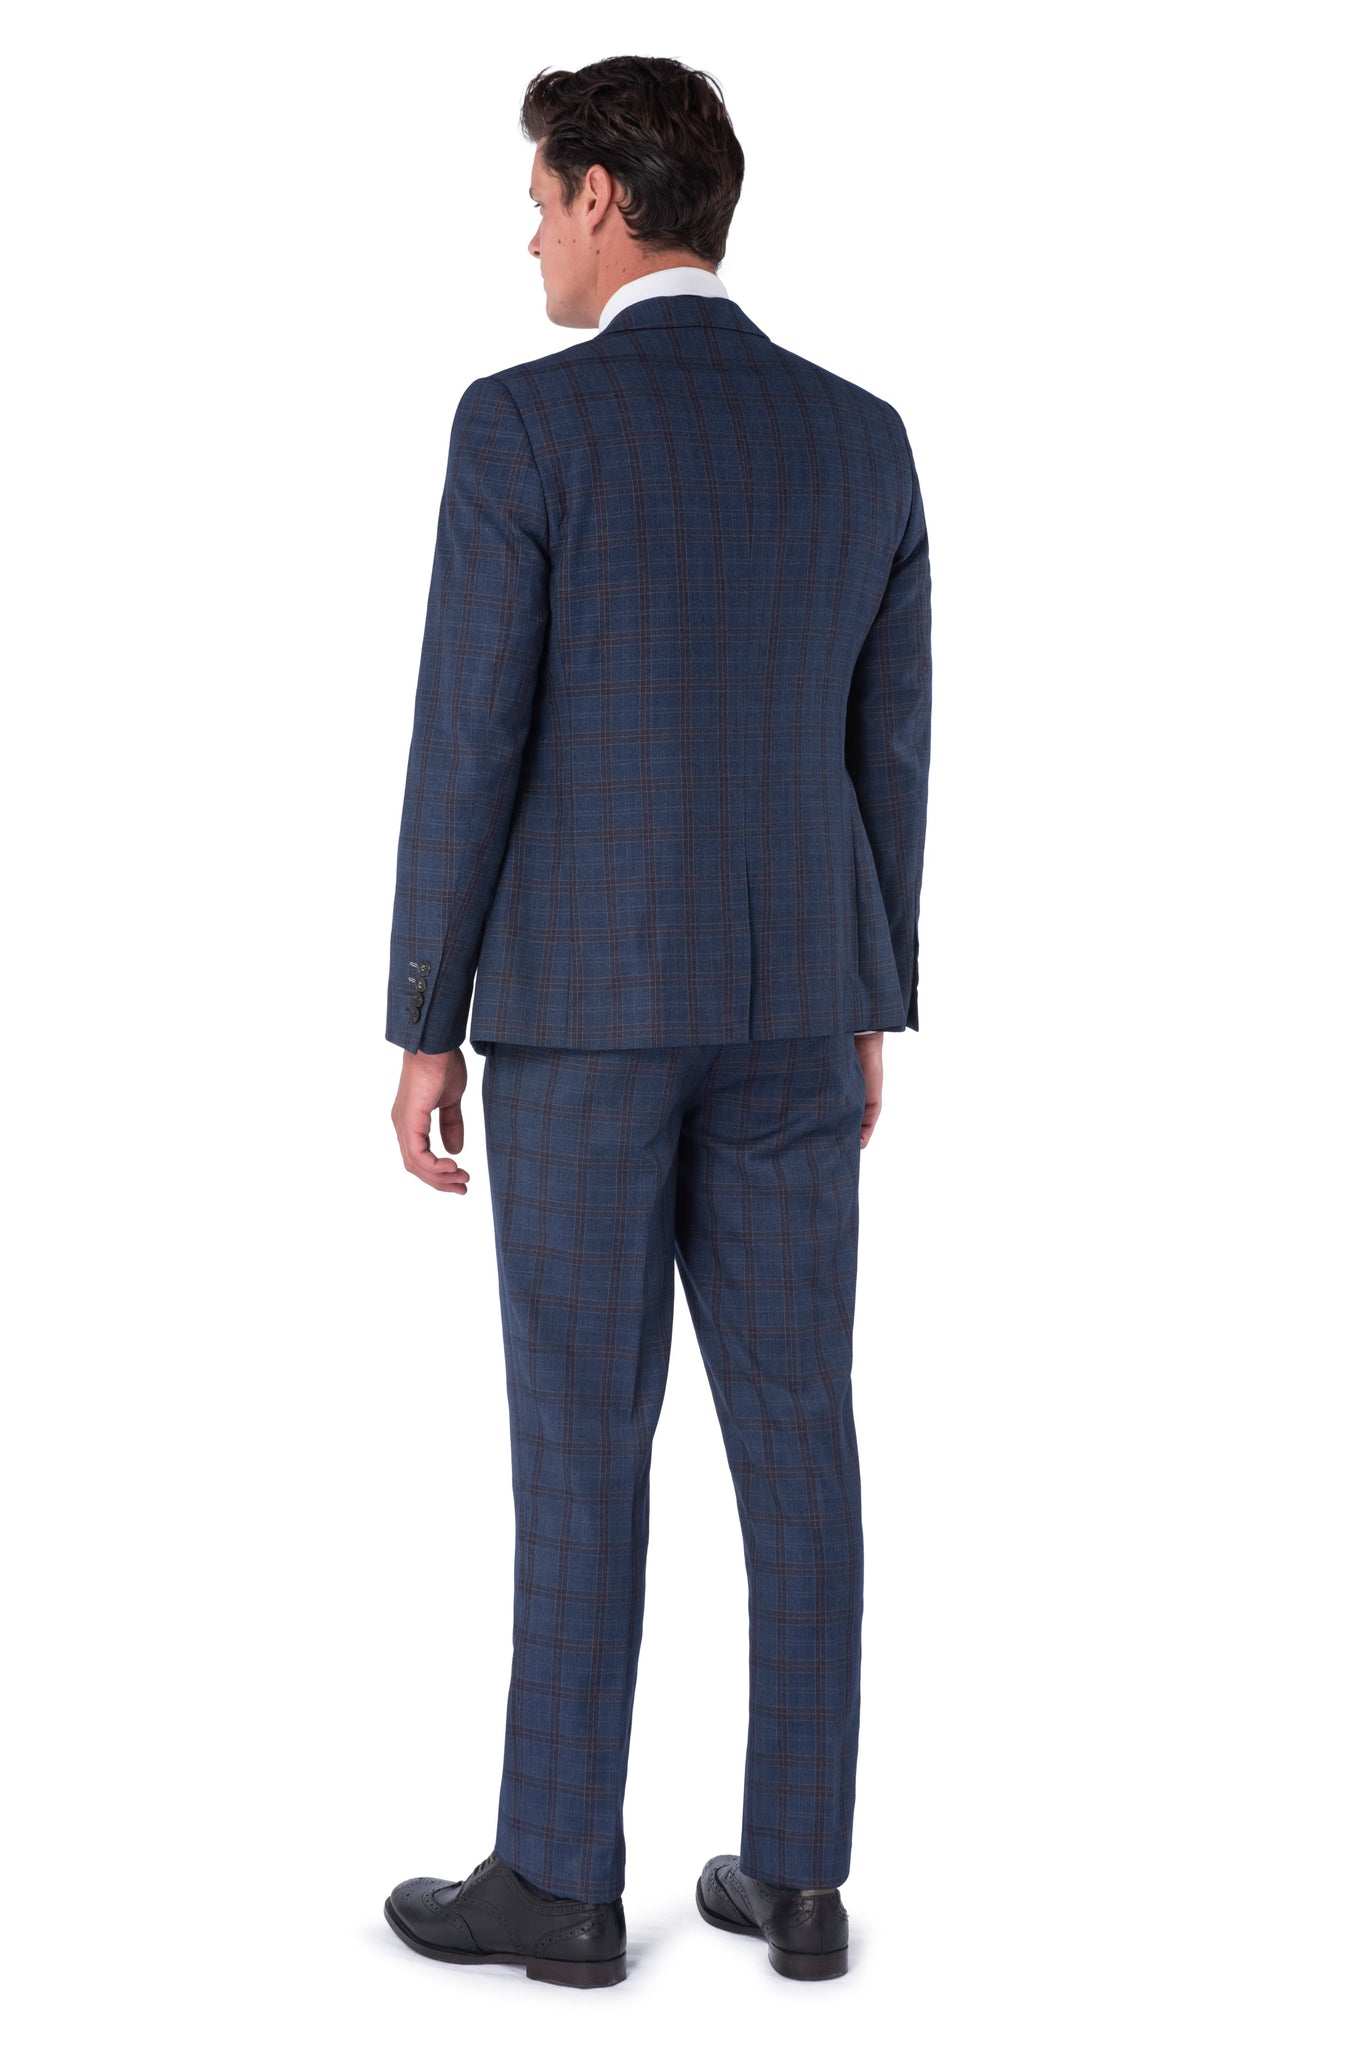 AIDEN Navy & Burgundy Slim Fit Suit - Back